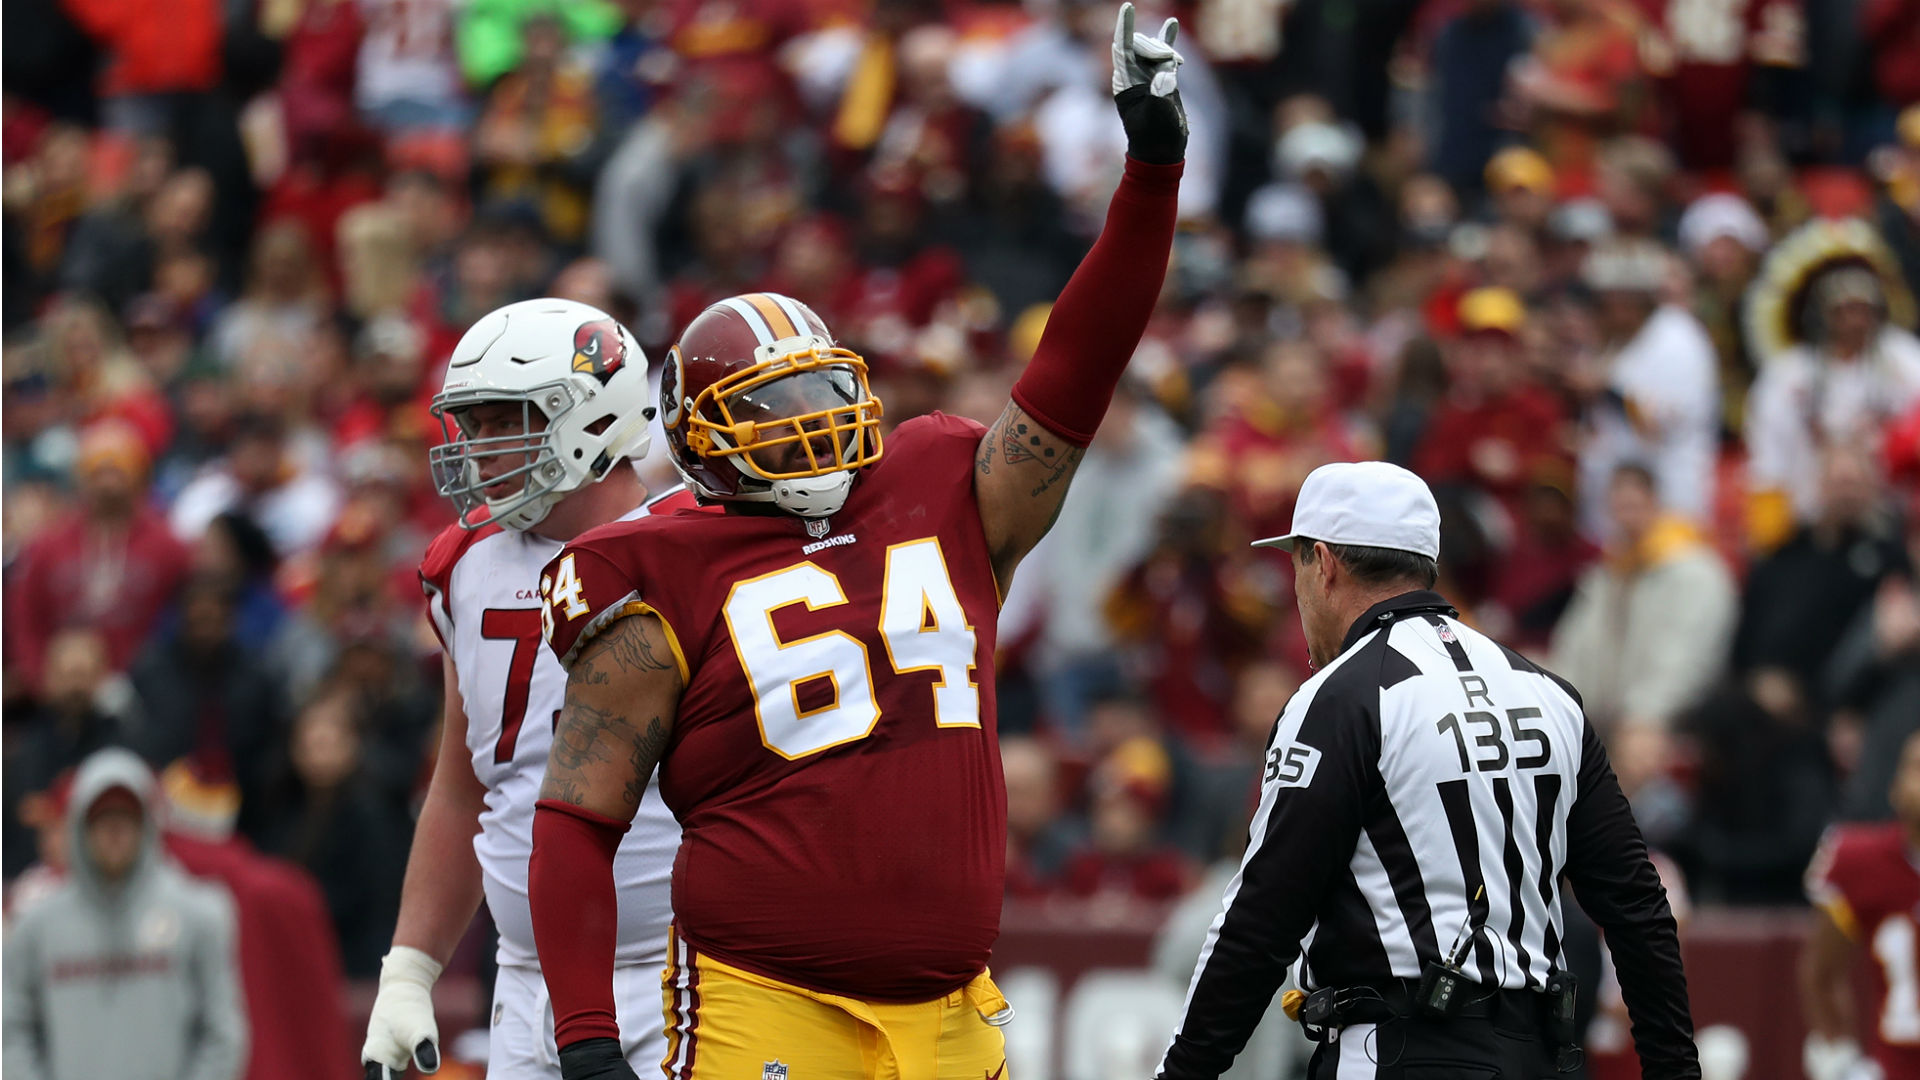 Lineman shreds Redskins after signing with the Giants